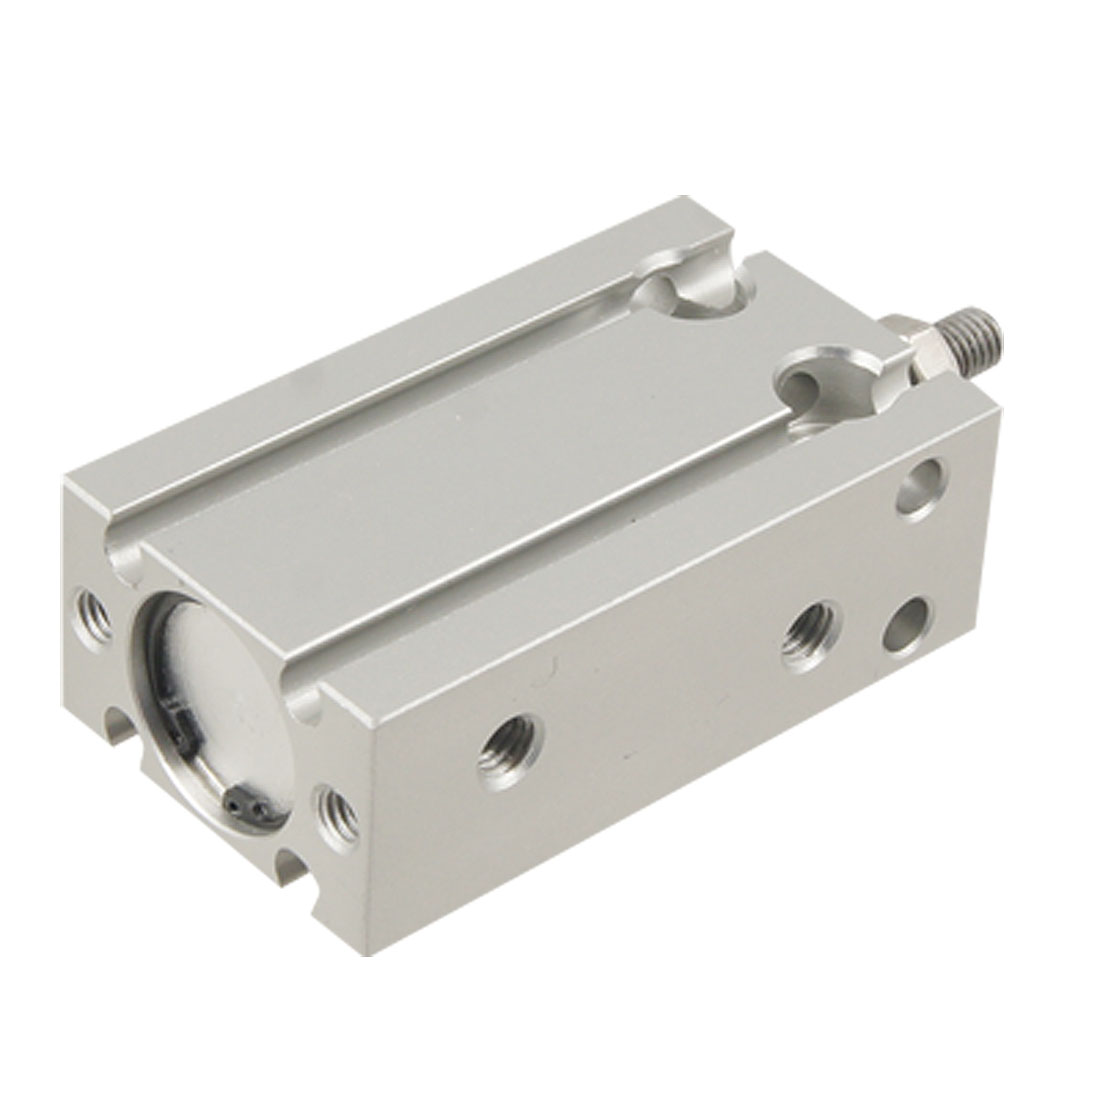 16mm Bore 15mm Stroke Pneumatic Multi Position Air Cylinder